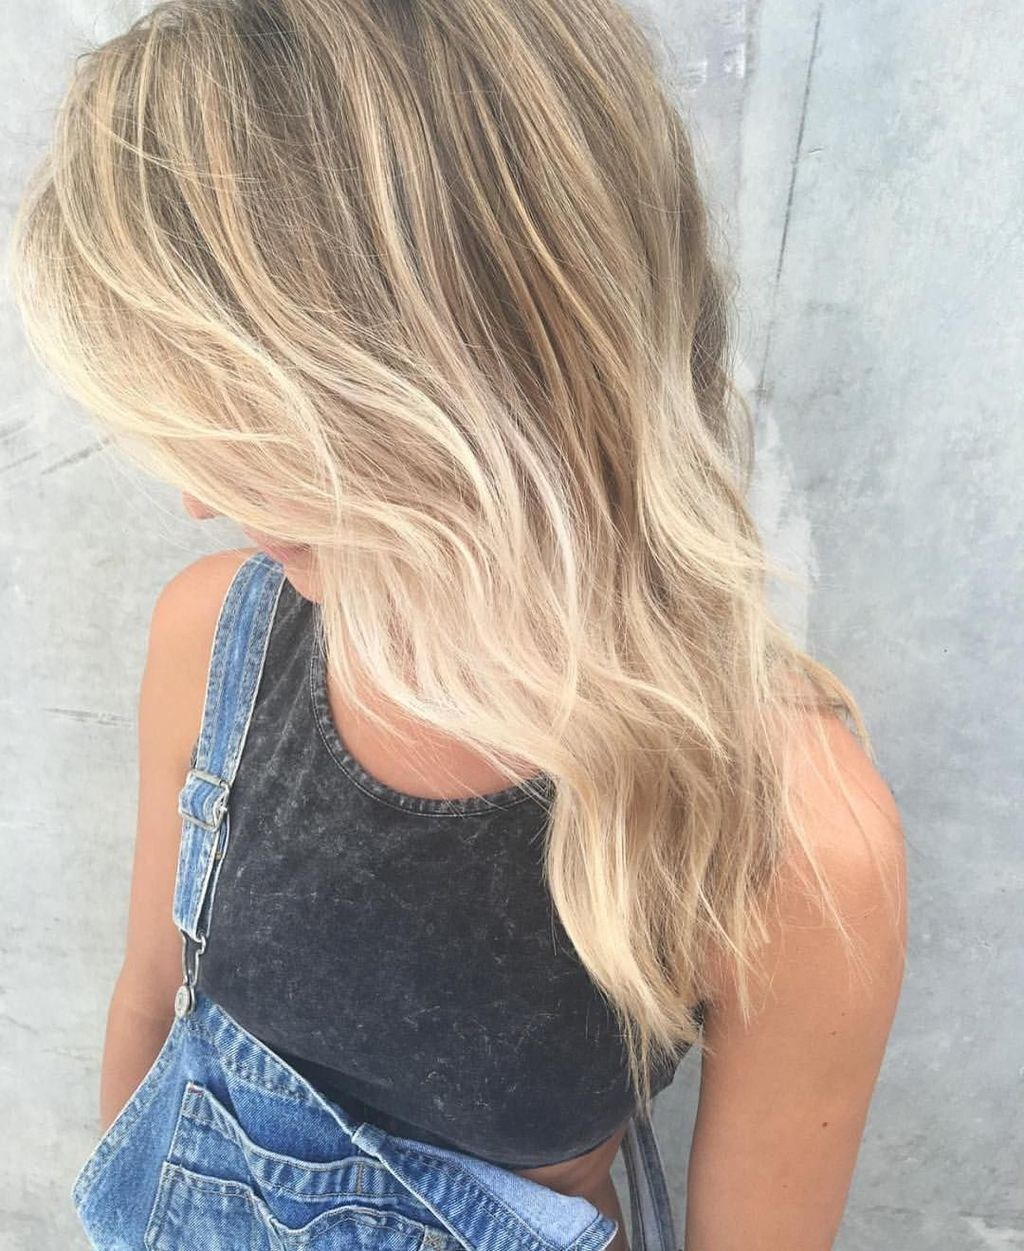 Hot Blonde Balayage Hairstyle Ideas For Any Season 01